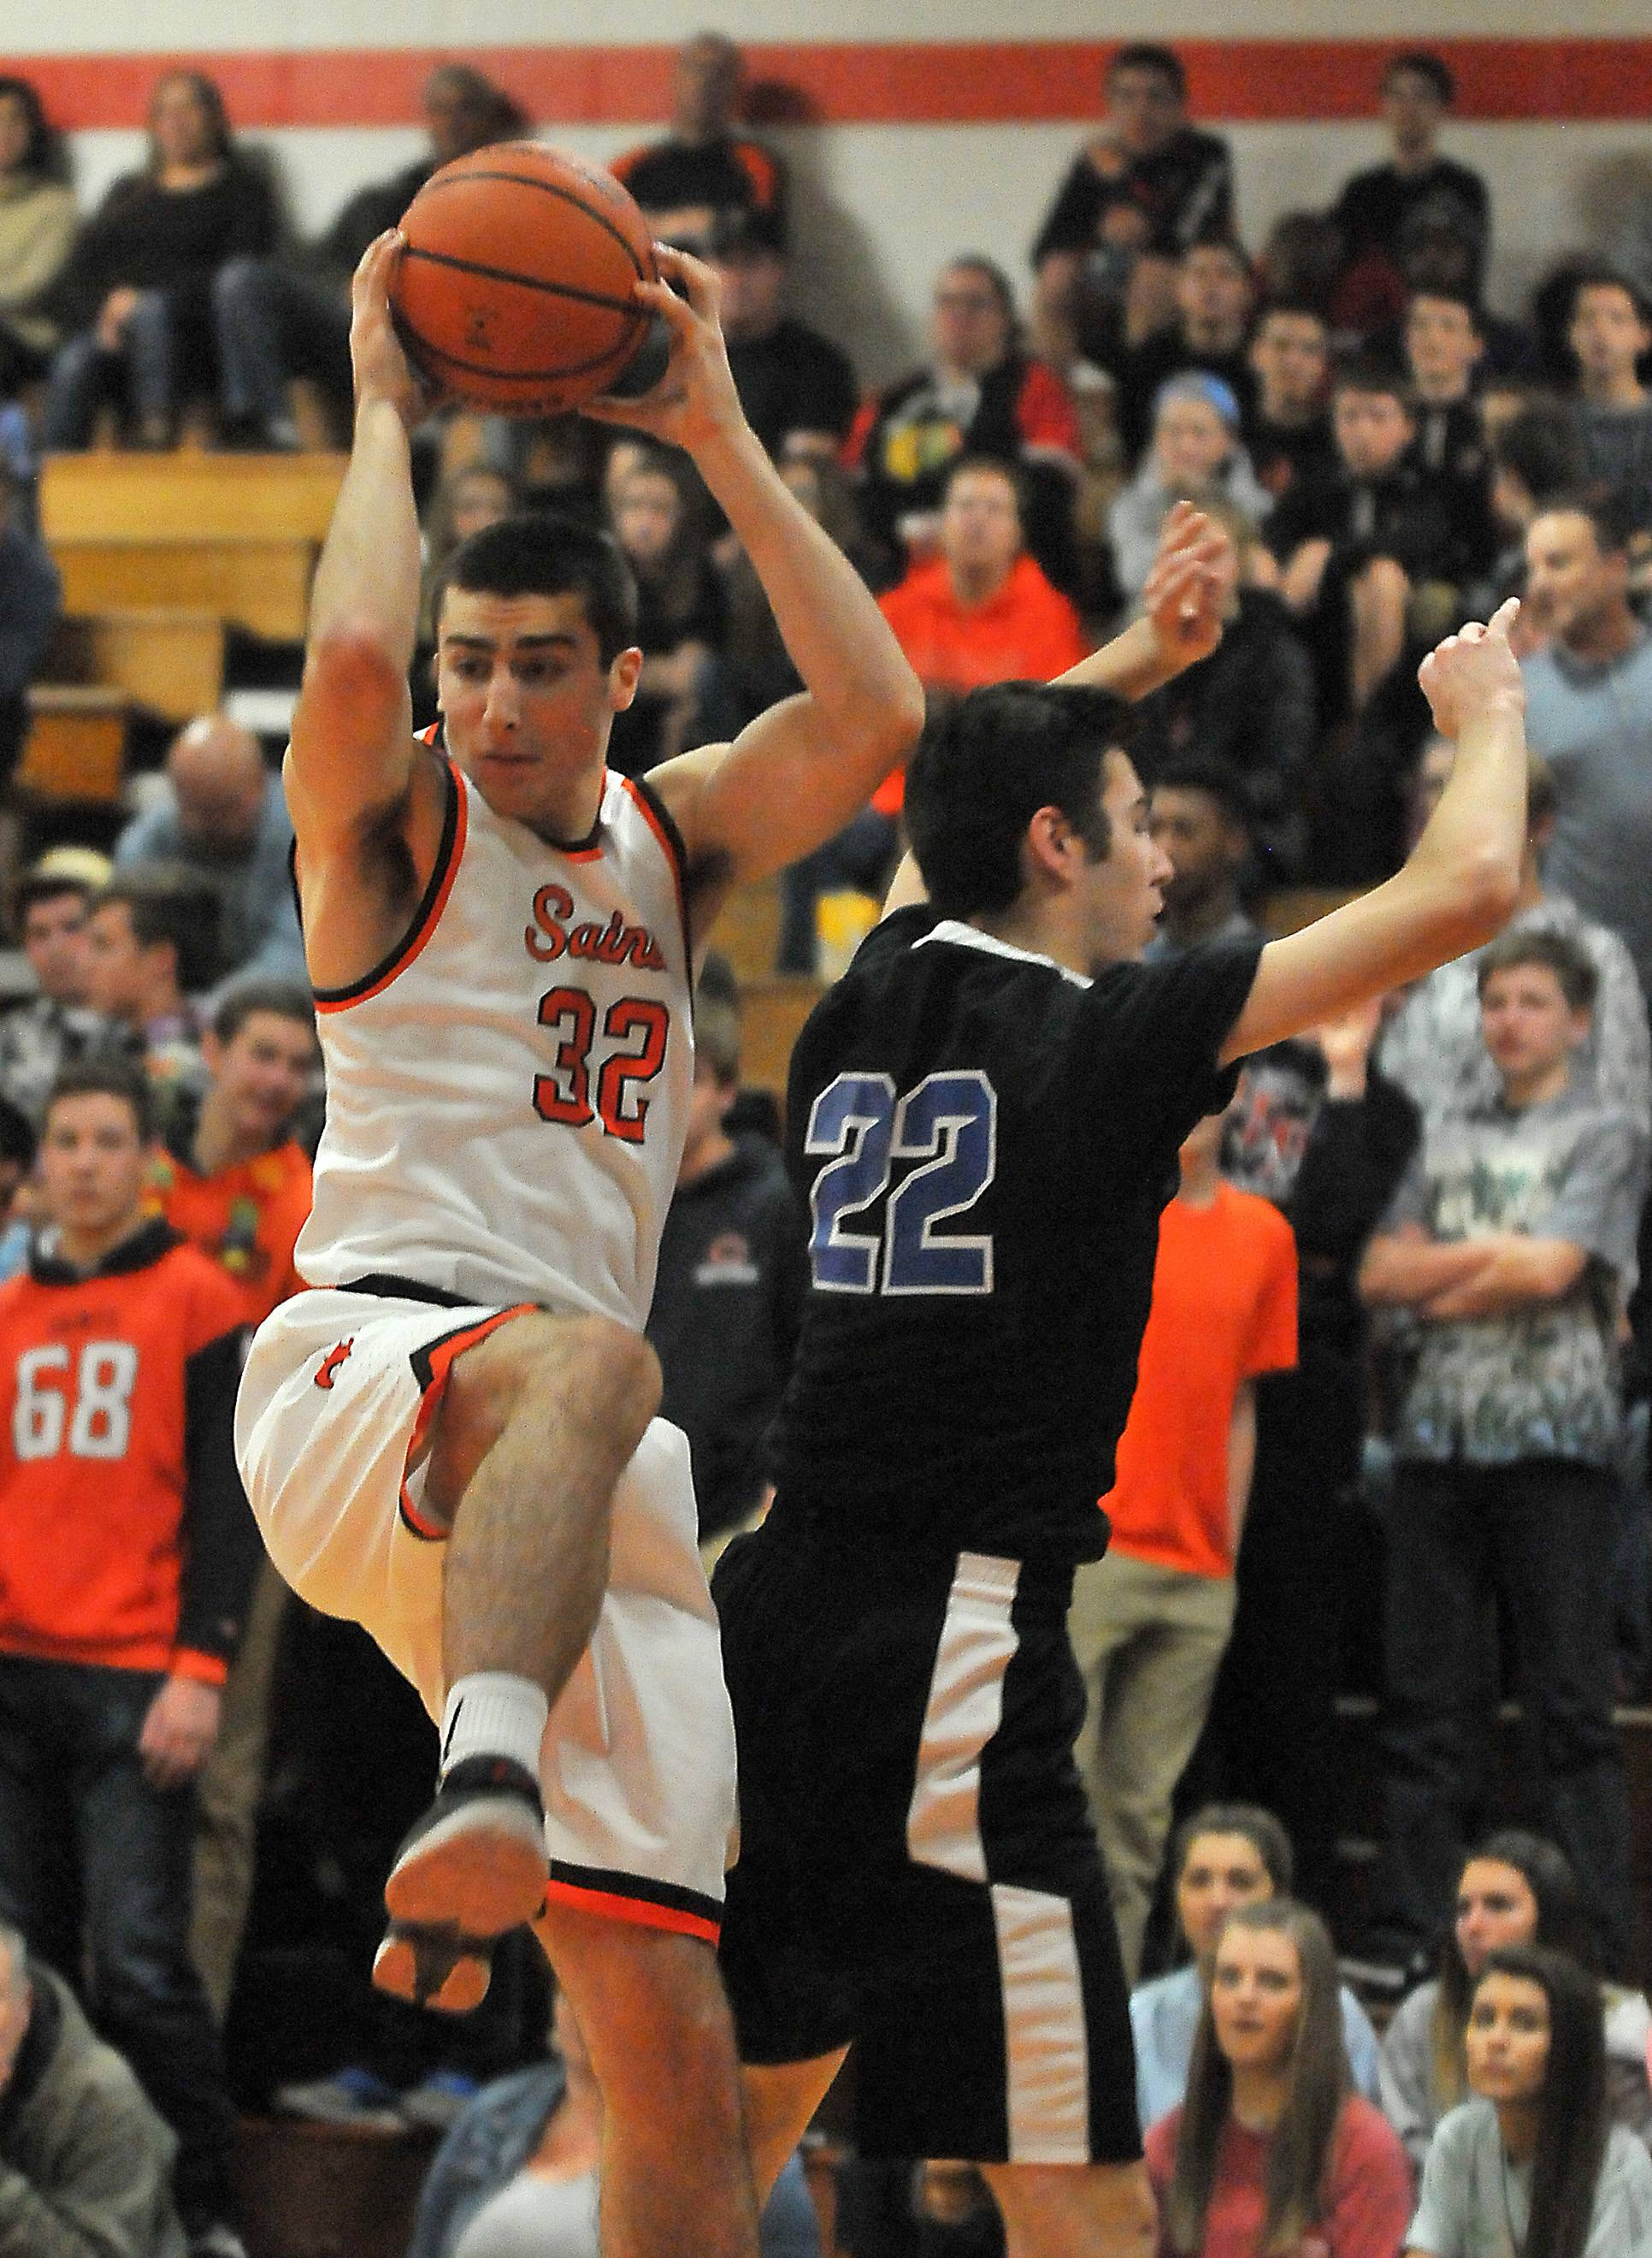 St. Charles East's Zach Mitchell beats St. Charles North's Cade Callaghan to a rebound in the first quarter Saturday at East.